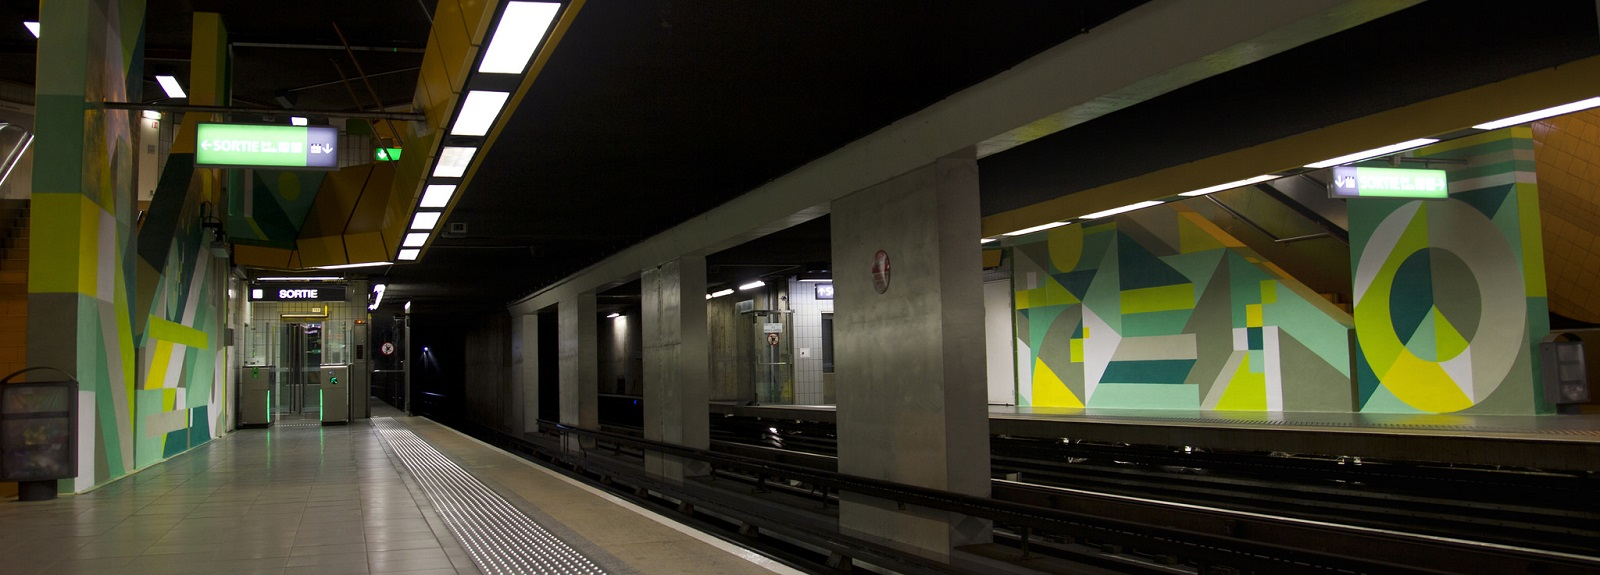 nelio-new-mural-at-station-mermoz-in-lyon-01